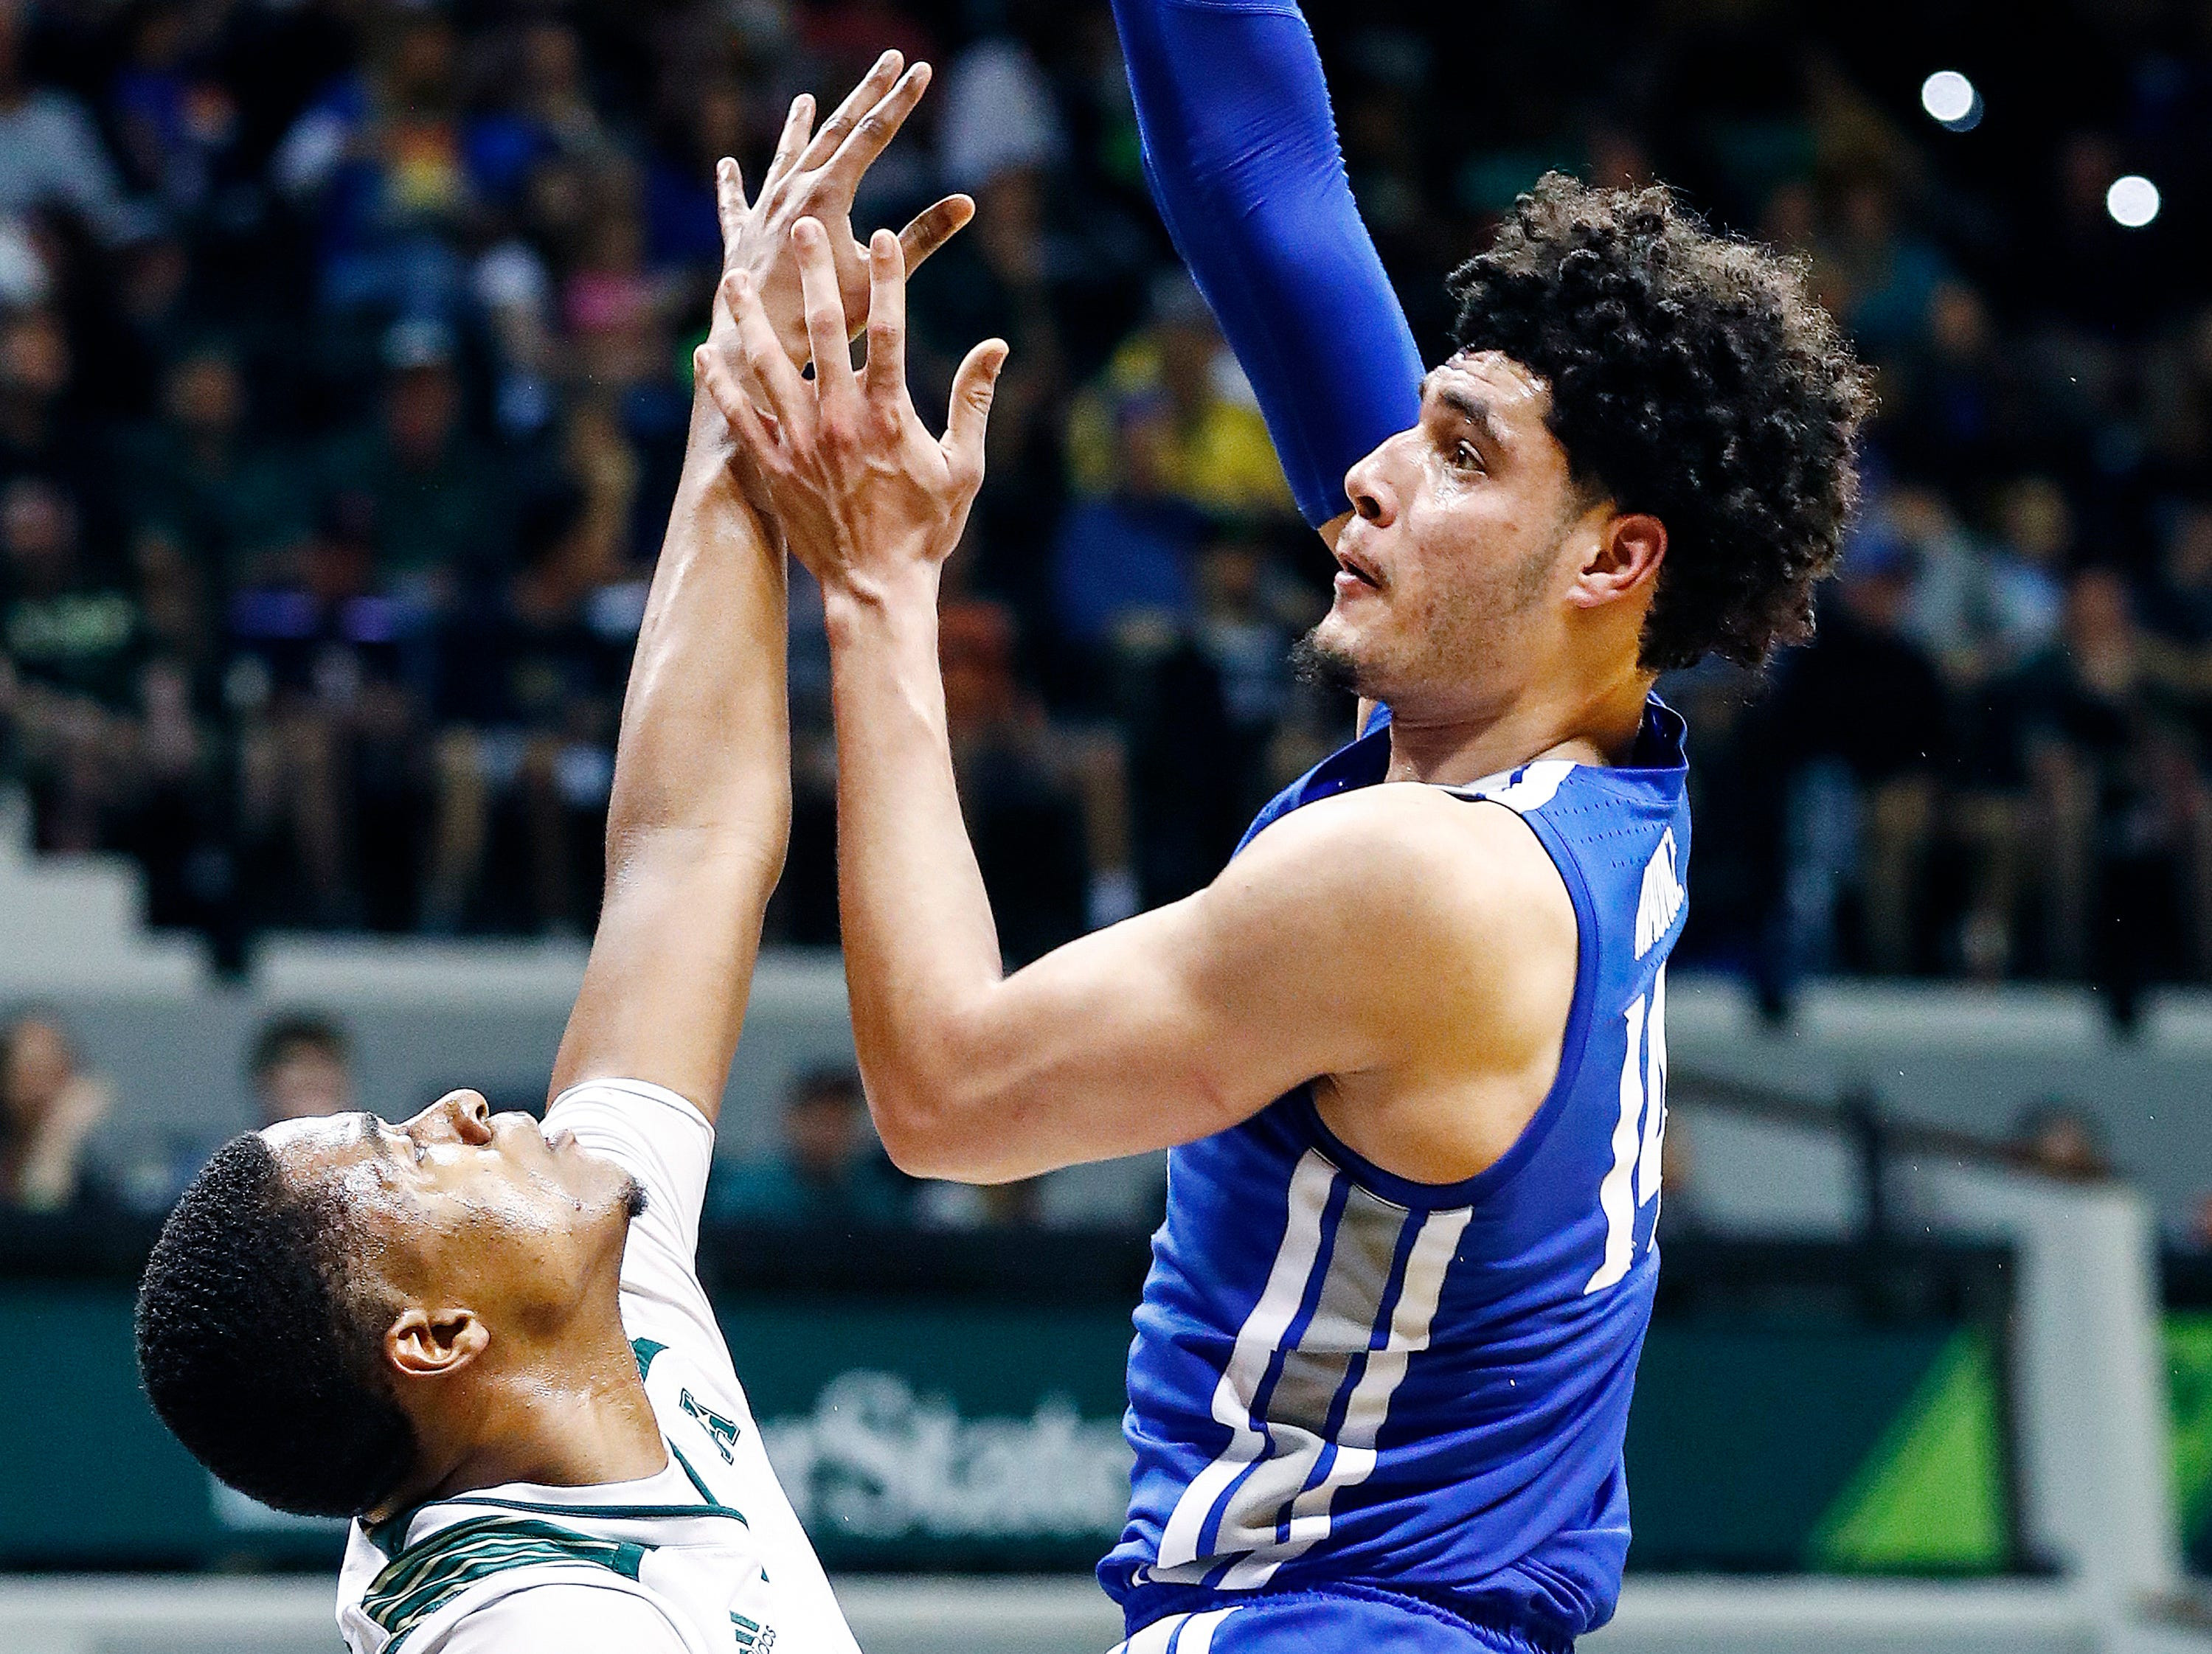 Memphis forward Isaiah Maurice (right) puts up a shot against the USF defense during action in Tampa, Saturday, February 2, 2019.